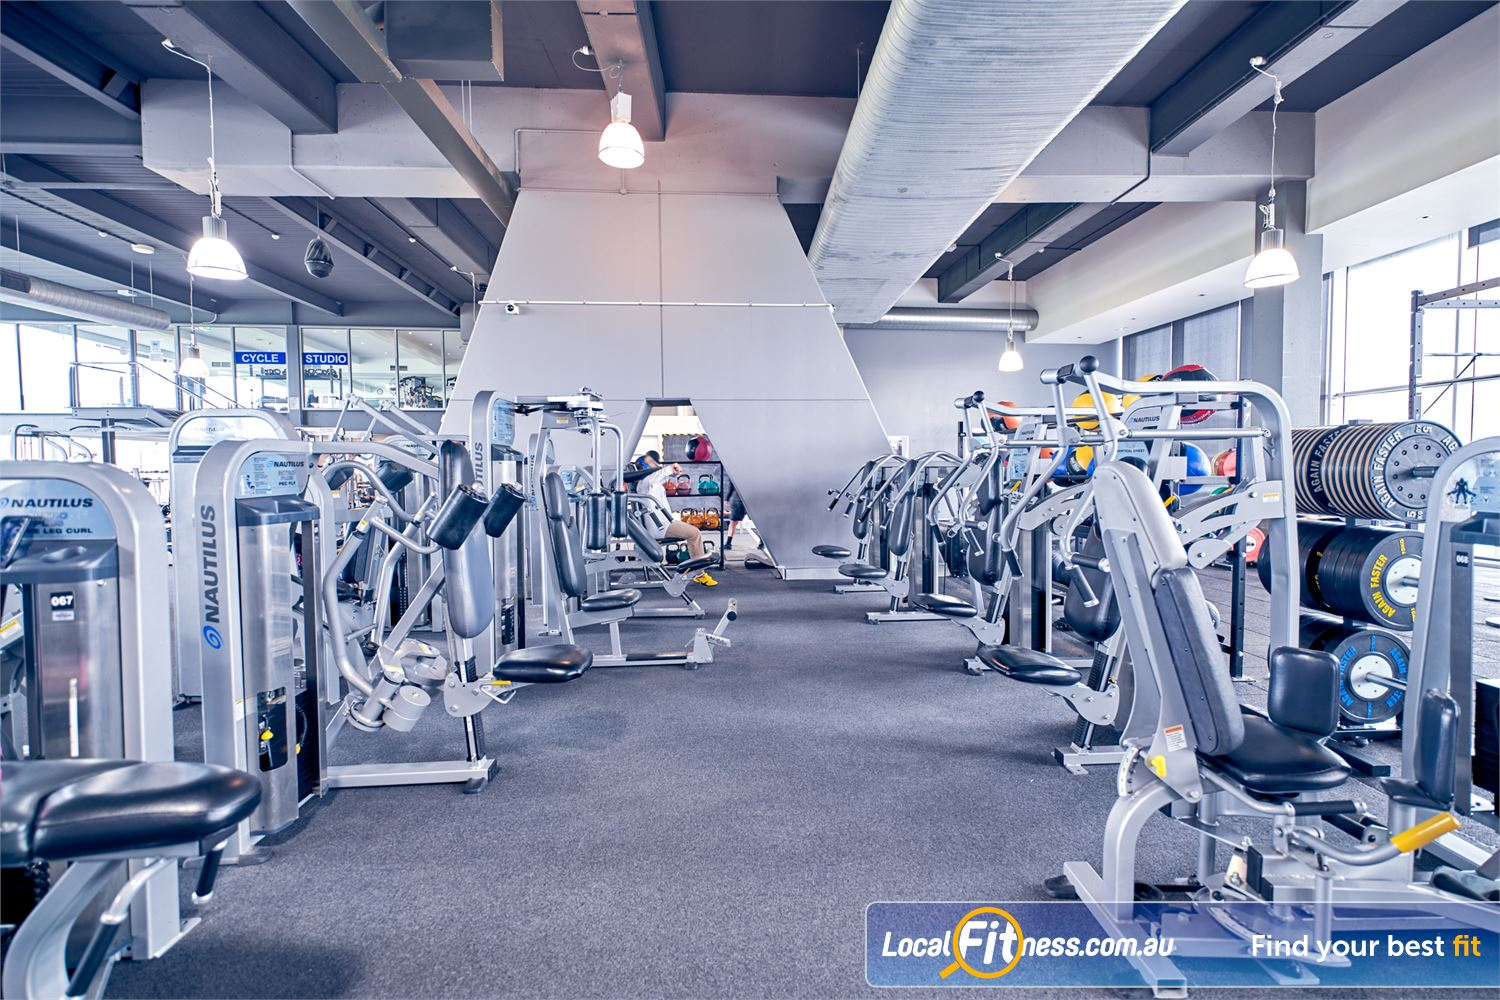 Goodlife Health Clubs Waverley Park Near Springvale Our Mulgrave gym includes state of the art pin-loading machines from Nautilus.